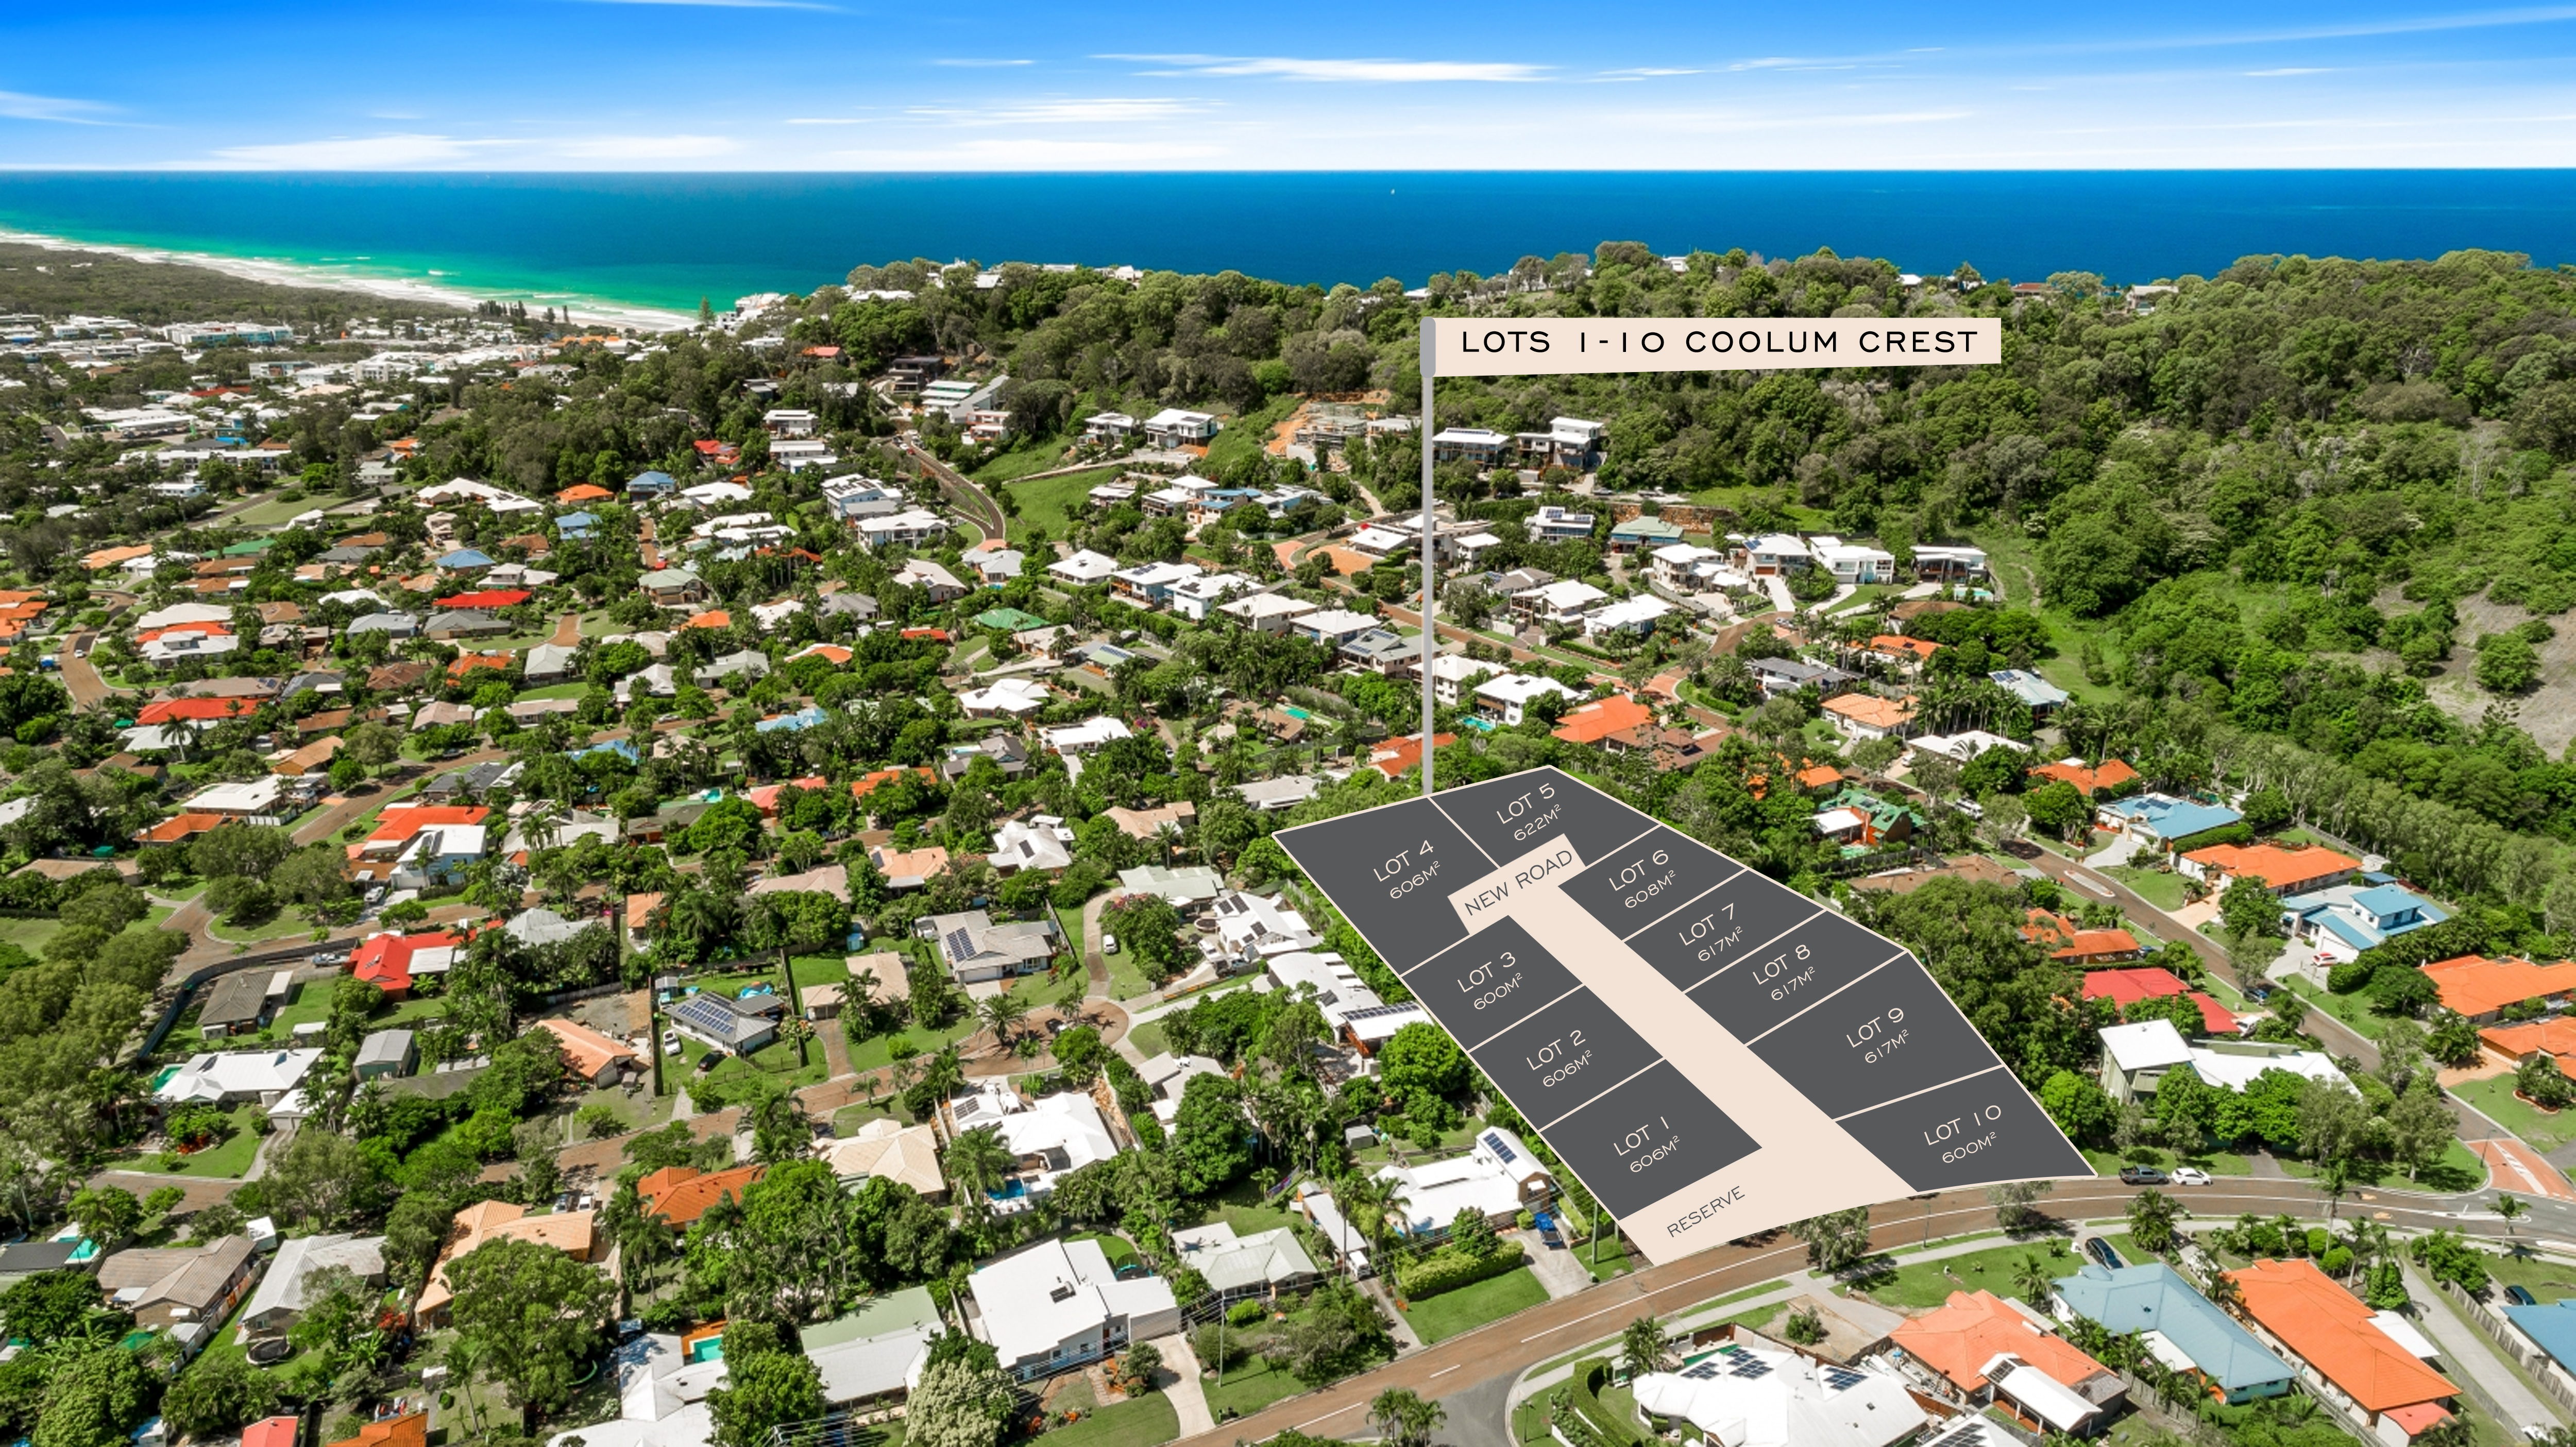 Premium Lifestyle in The Heart of Coolum.